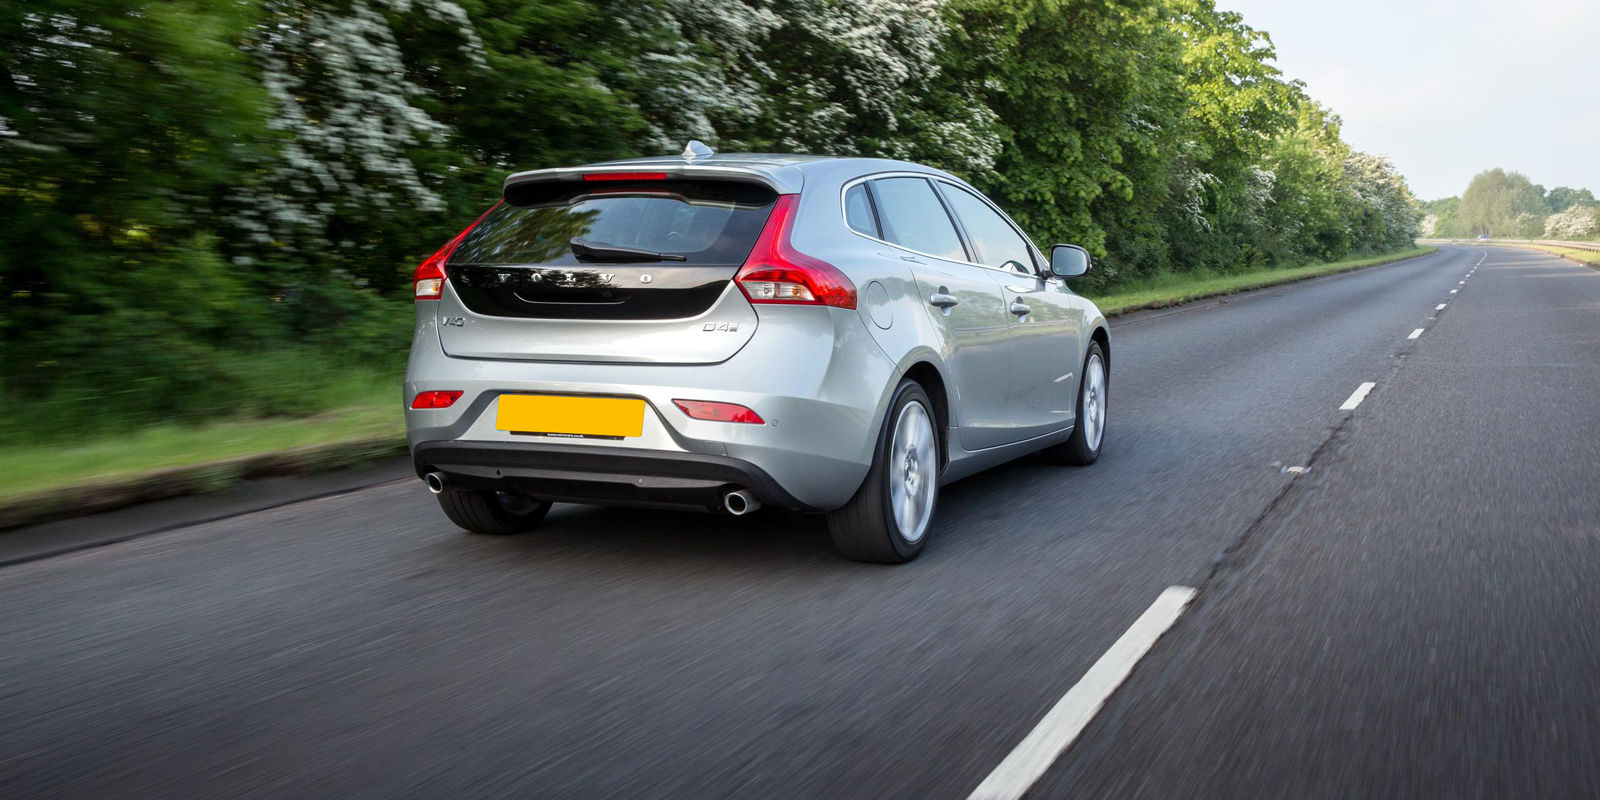 Mill volvo v40 deals pub meal deals swansea search volvo used cars in fort mill to find the best deals from a volvo dealer at max auto llc fandeluxe Images